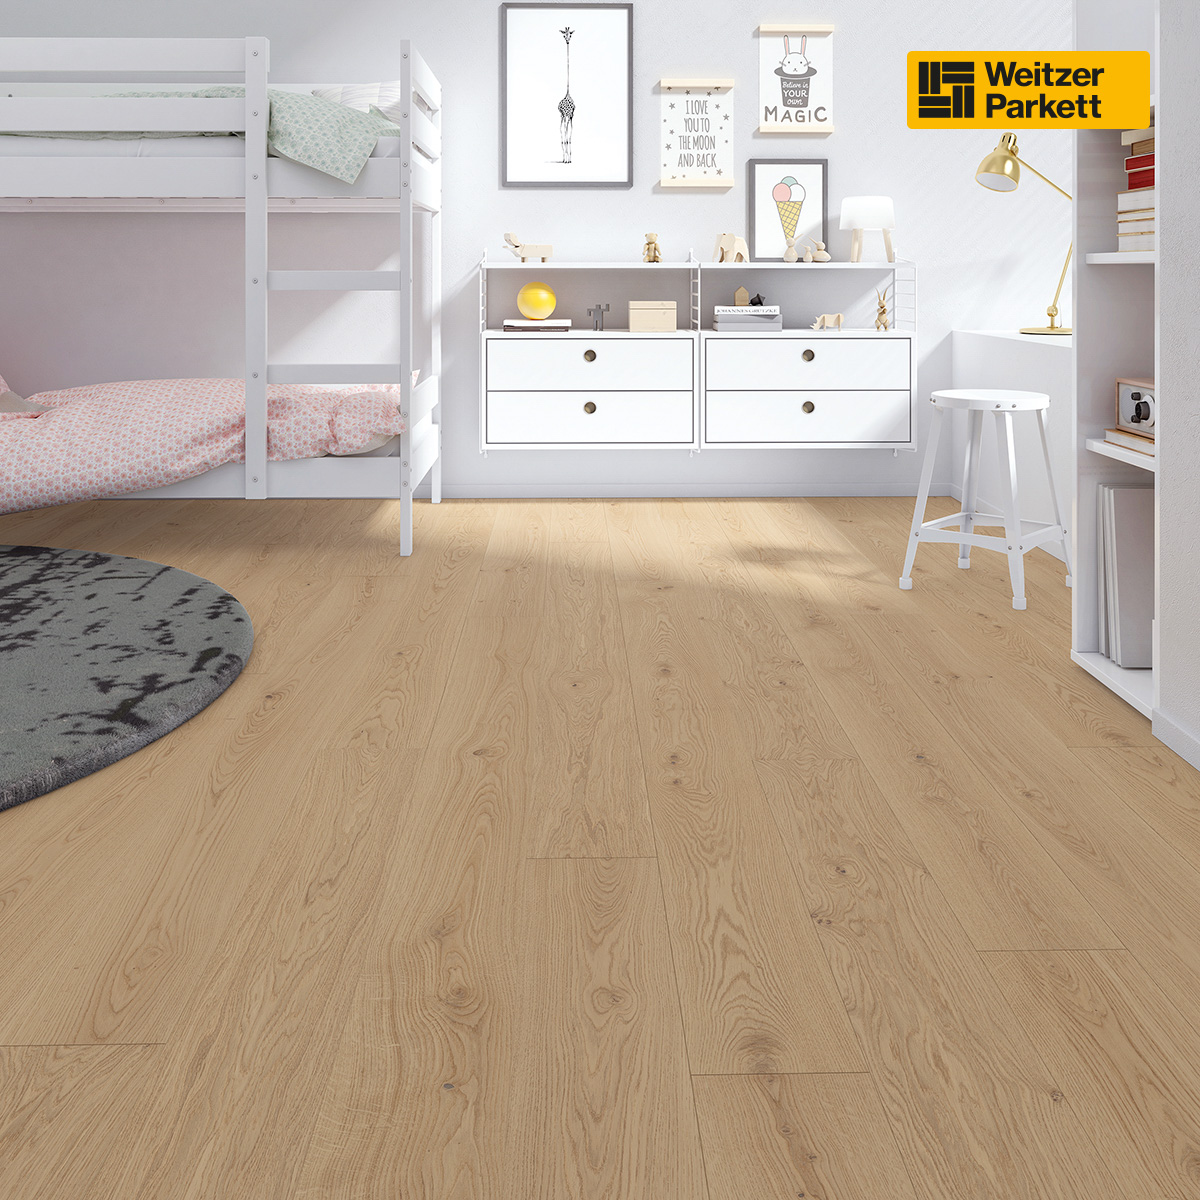 Plank-Appearance__WP_Charisma_EB_OAK_Pur_lively_28118.jpg